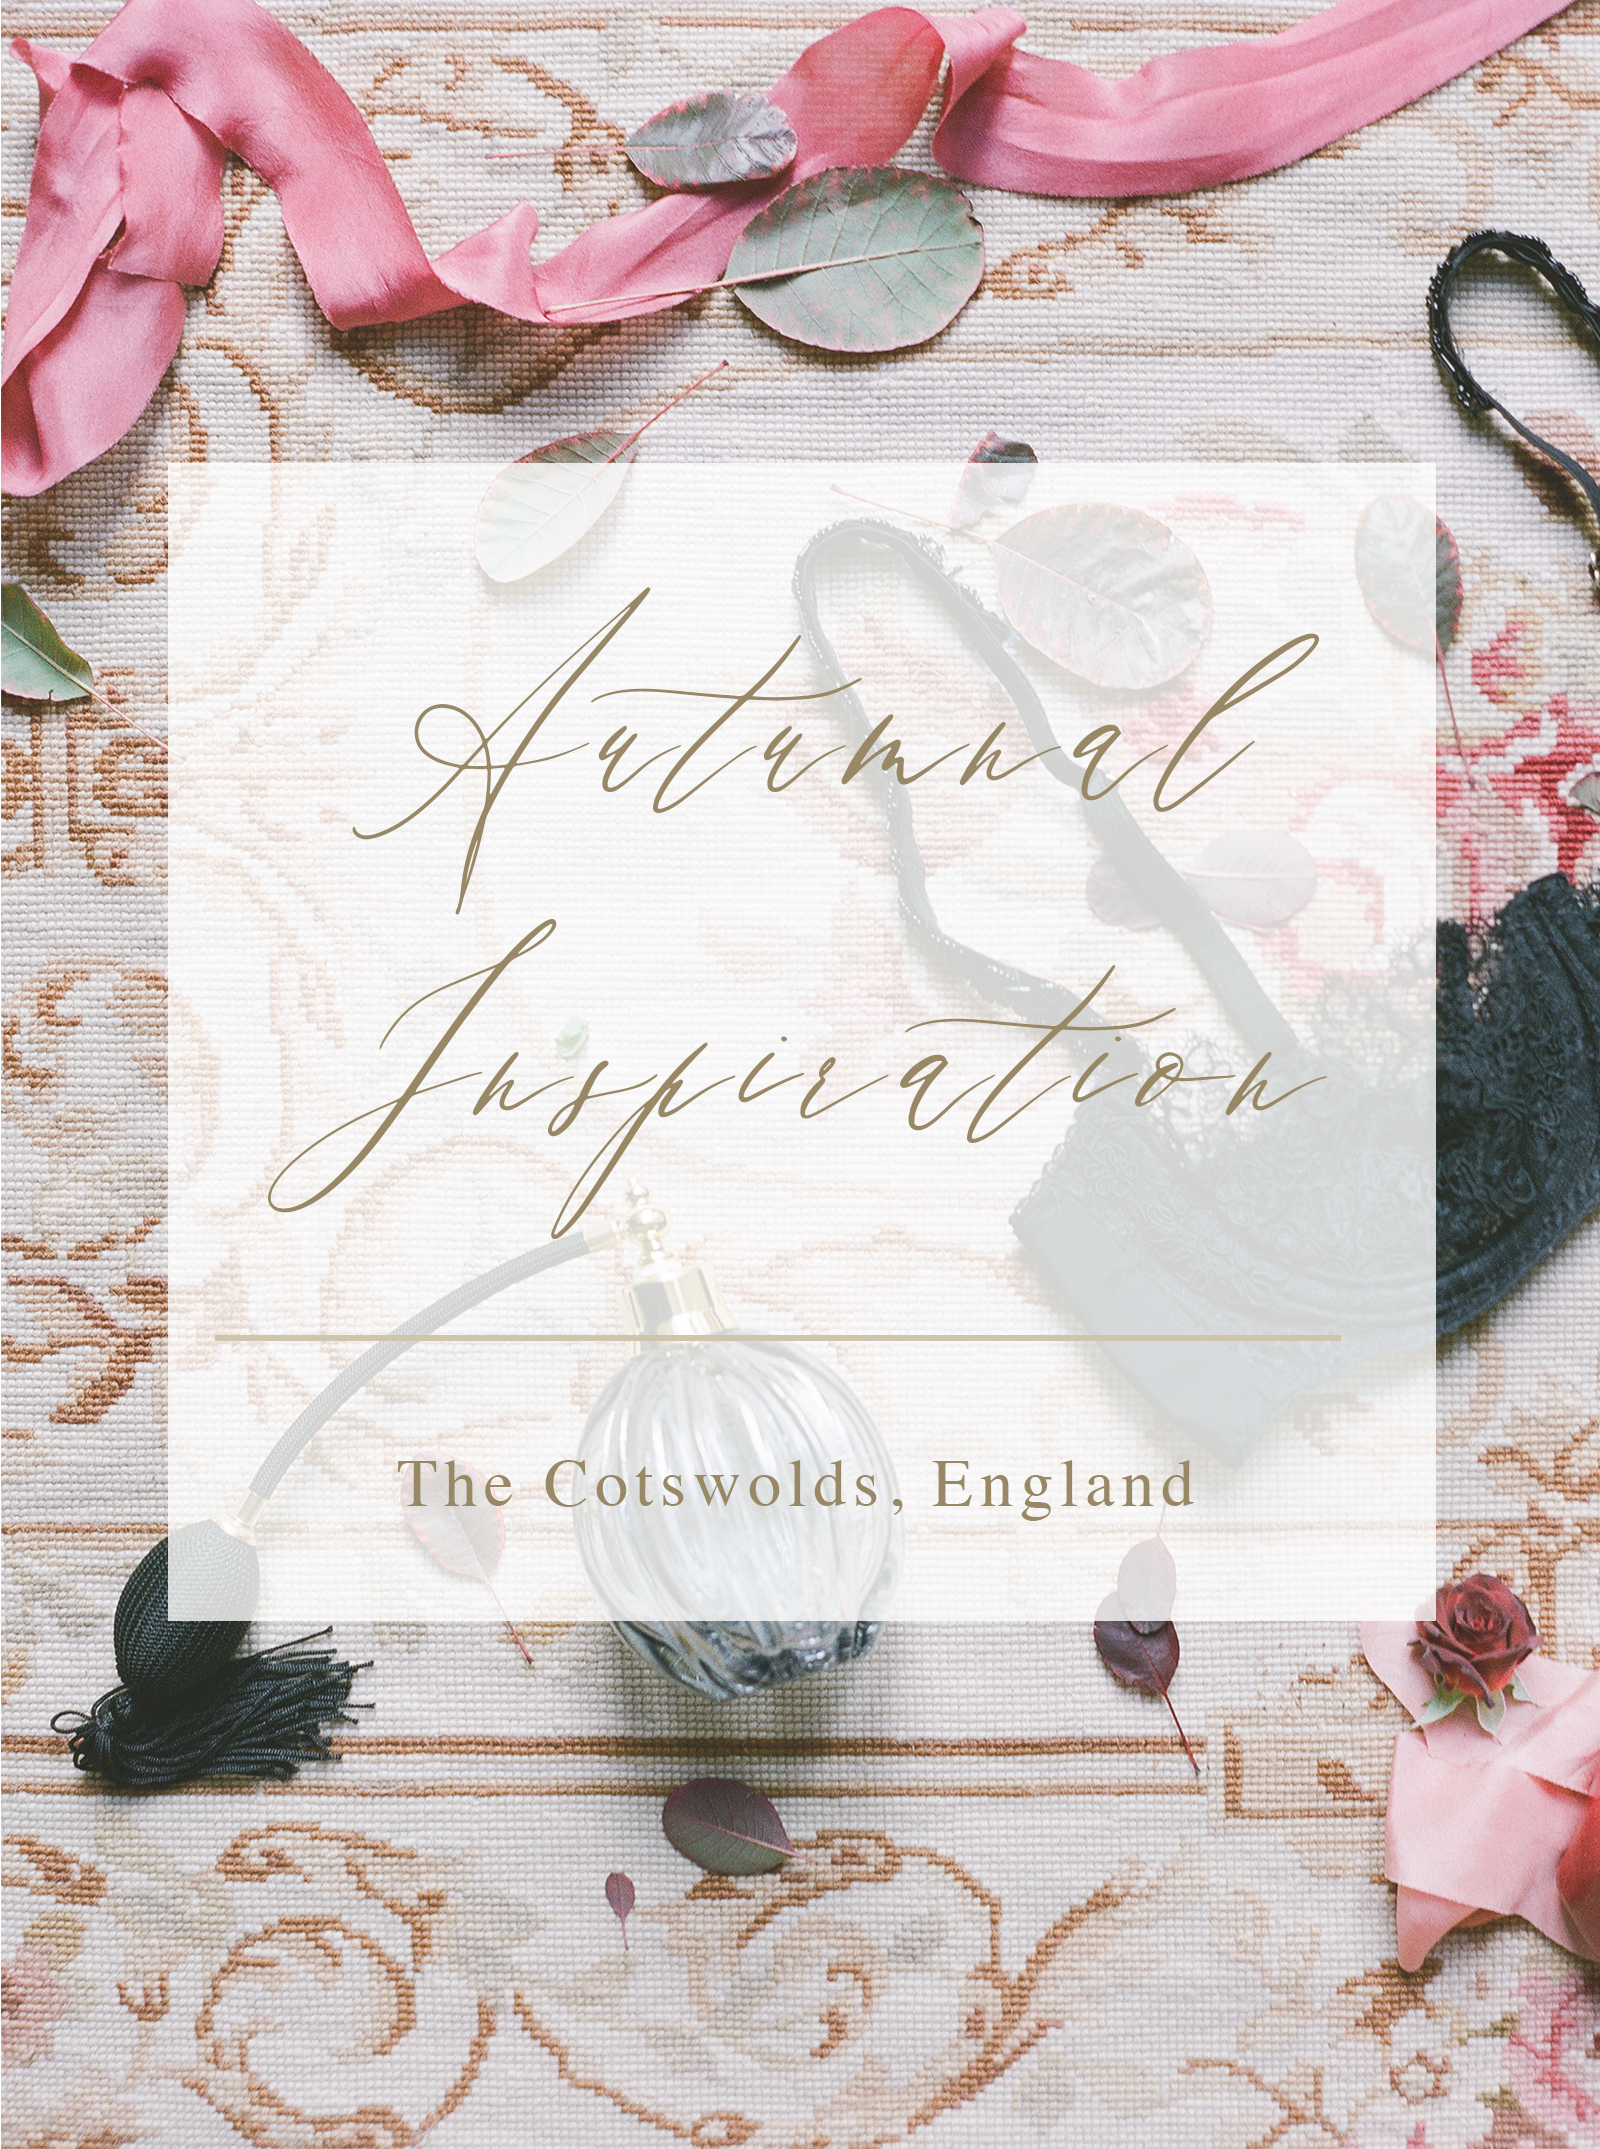 Luxury+Wedding+Planner+UK,+London+&+Europe+_+A+Feminine+&+Refined+Autumn+Wedding+Inspiration+_+English+Manor+Country+Autumn+Wedding+Moody+Romantic+Warm+Velvet+Black+Red+and+Peach+Tones+_+Molly+Carr+Photography106.png.png